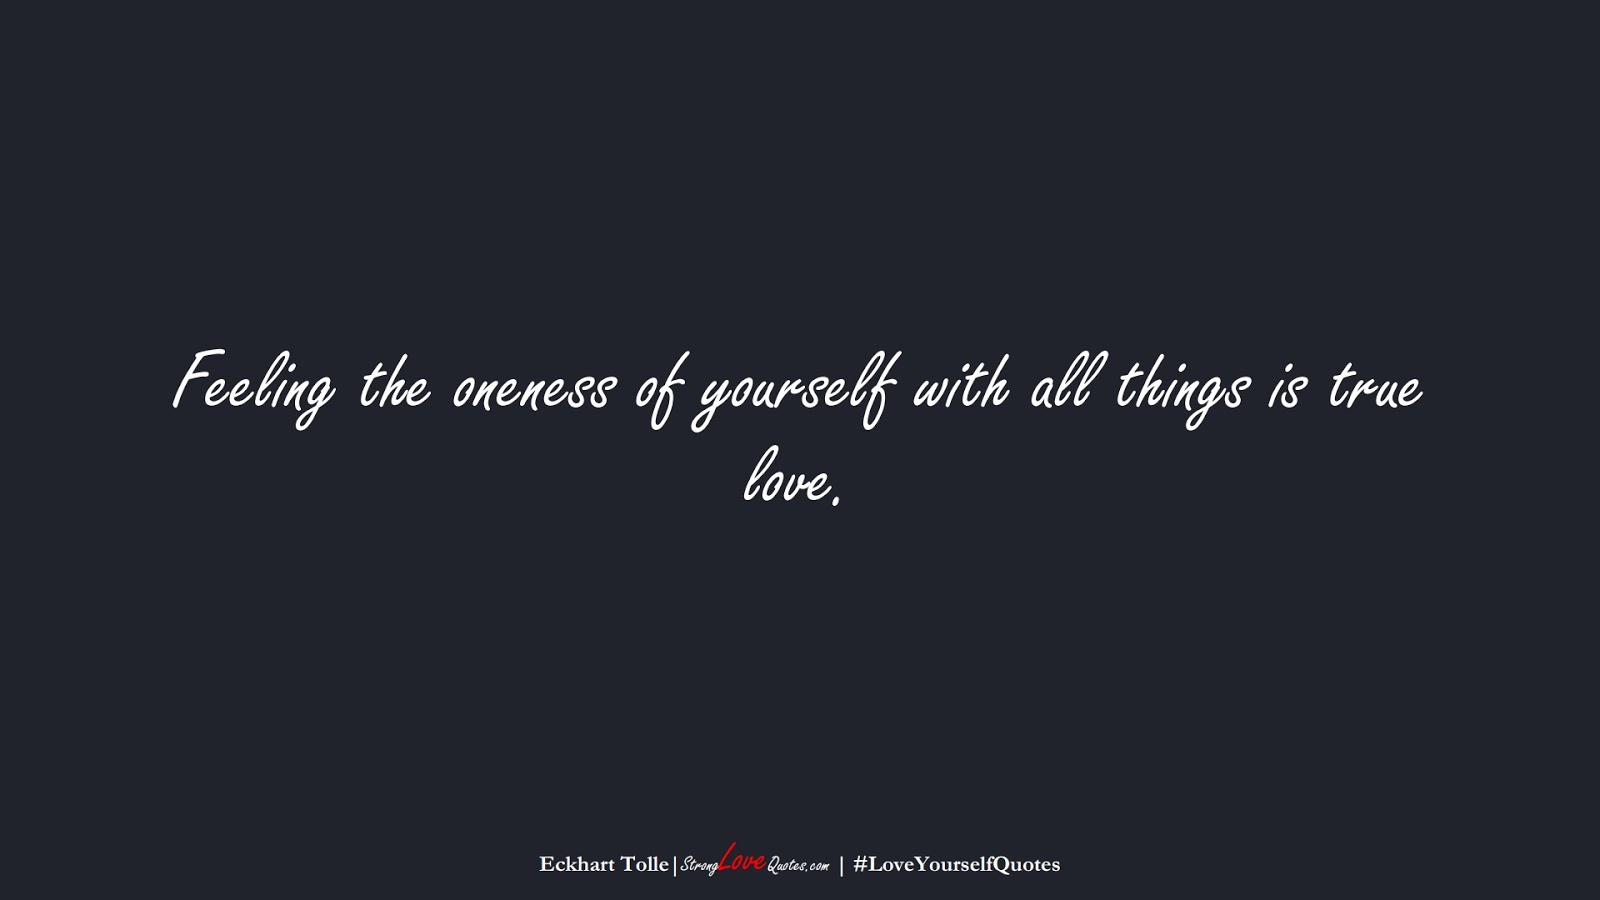 Feeling the oneness of yourself with all things is true love. (Eckhart Tolle);  #LoveYourselfQuotes